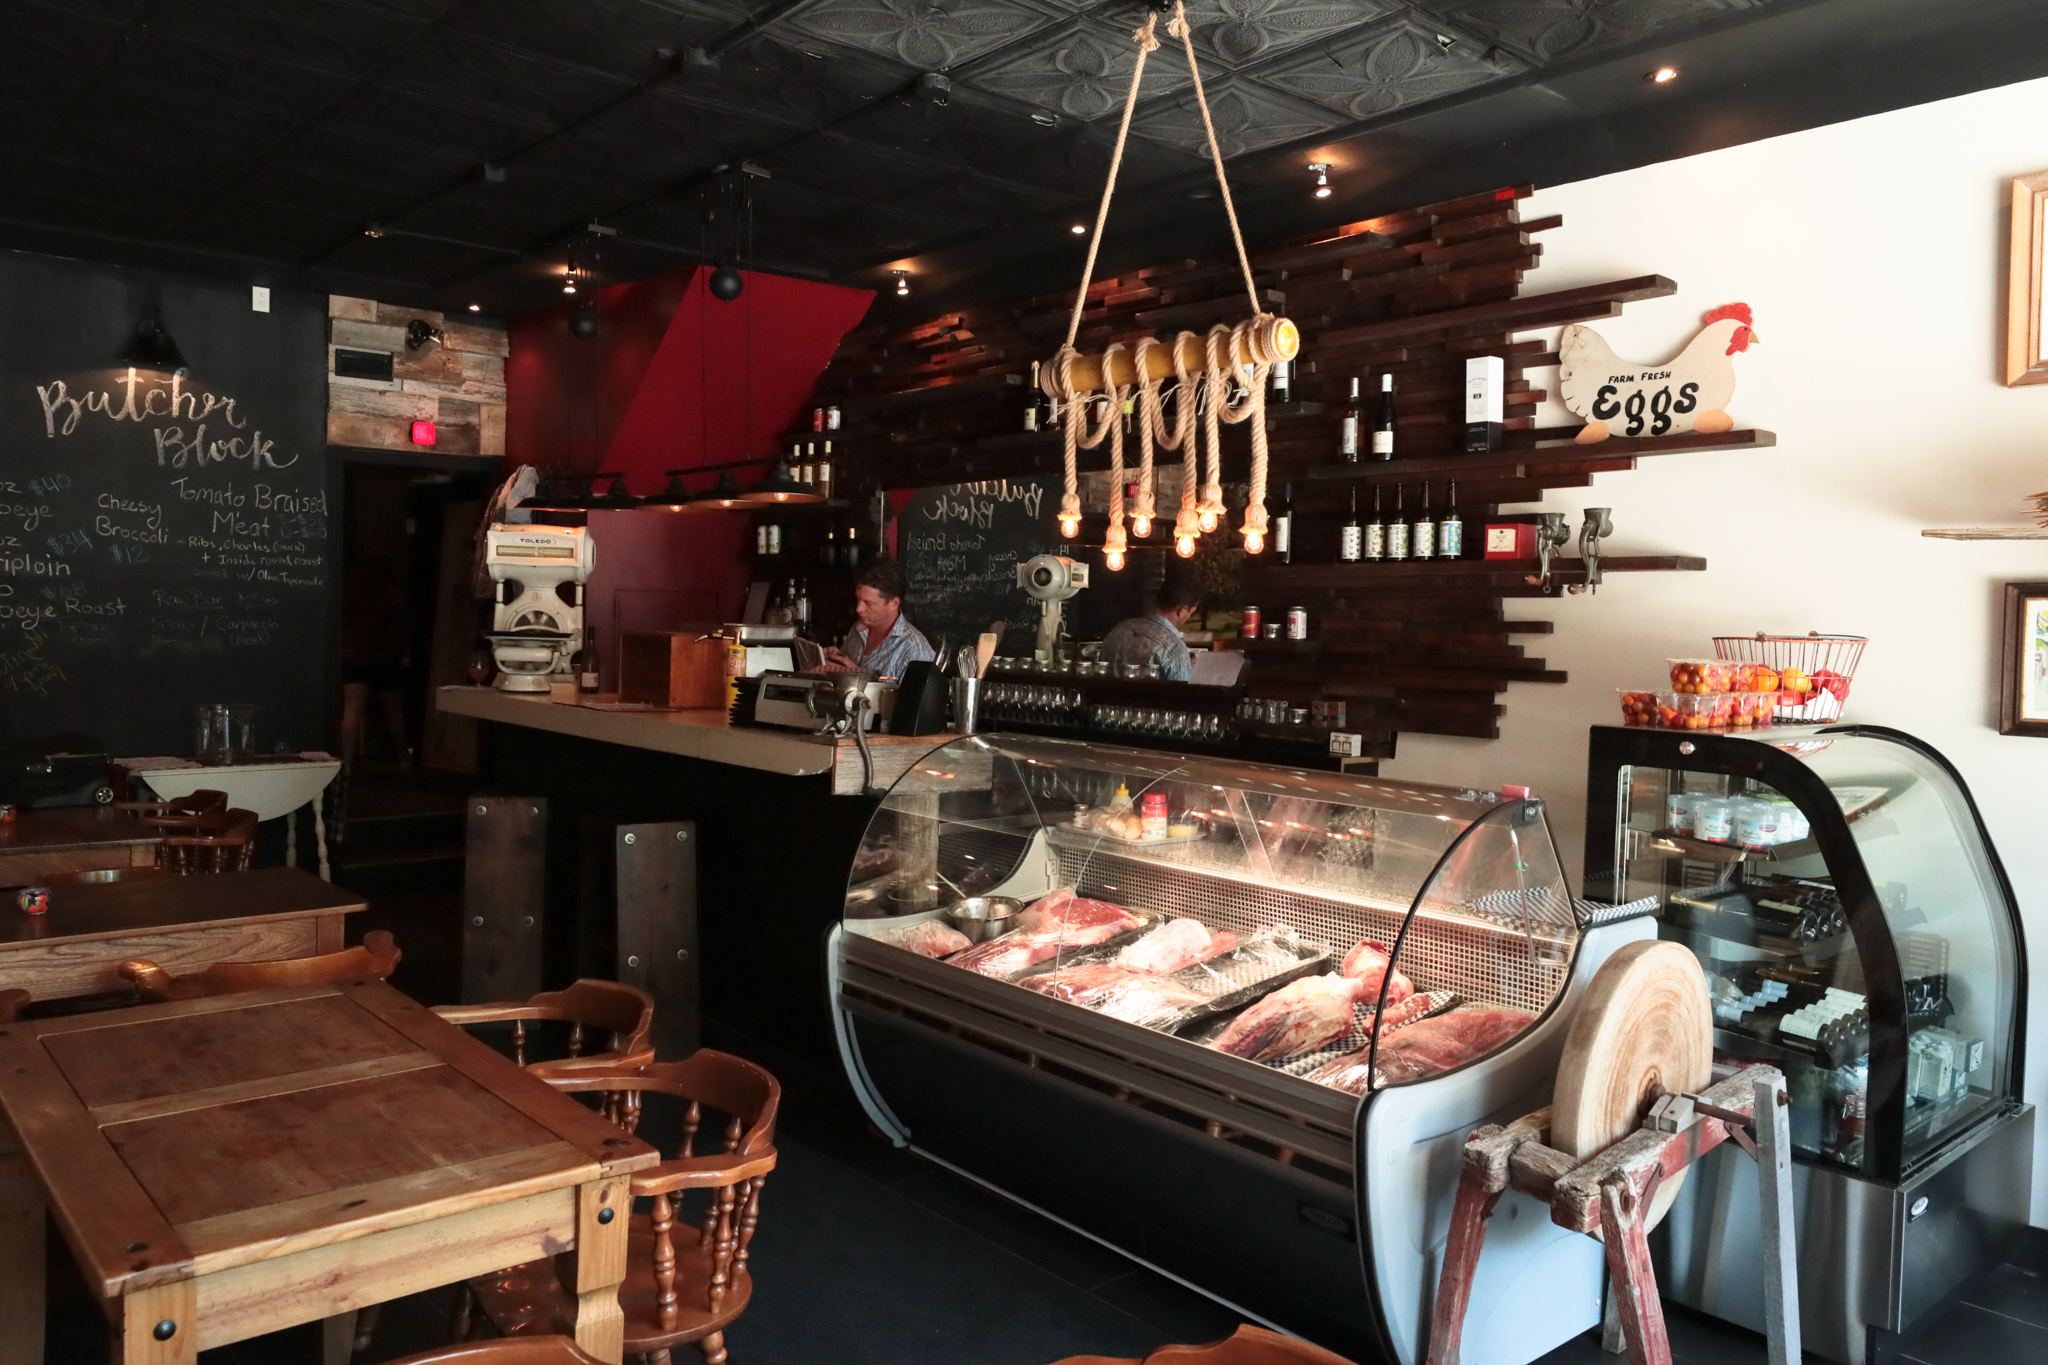 Interior with Butcher